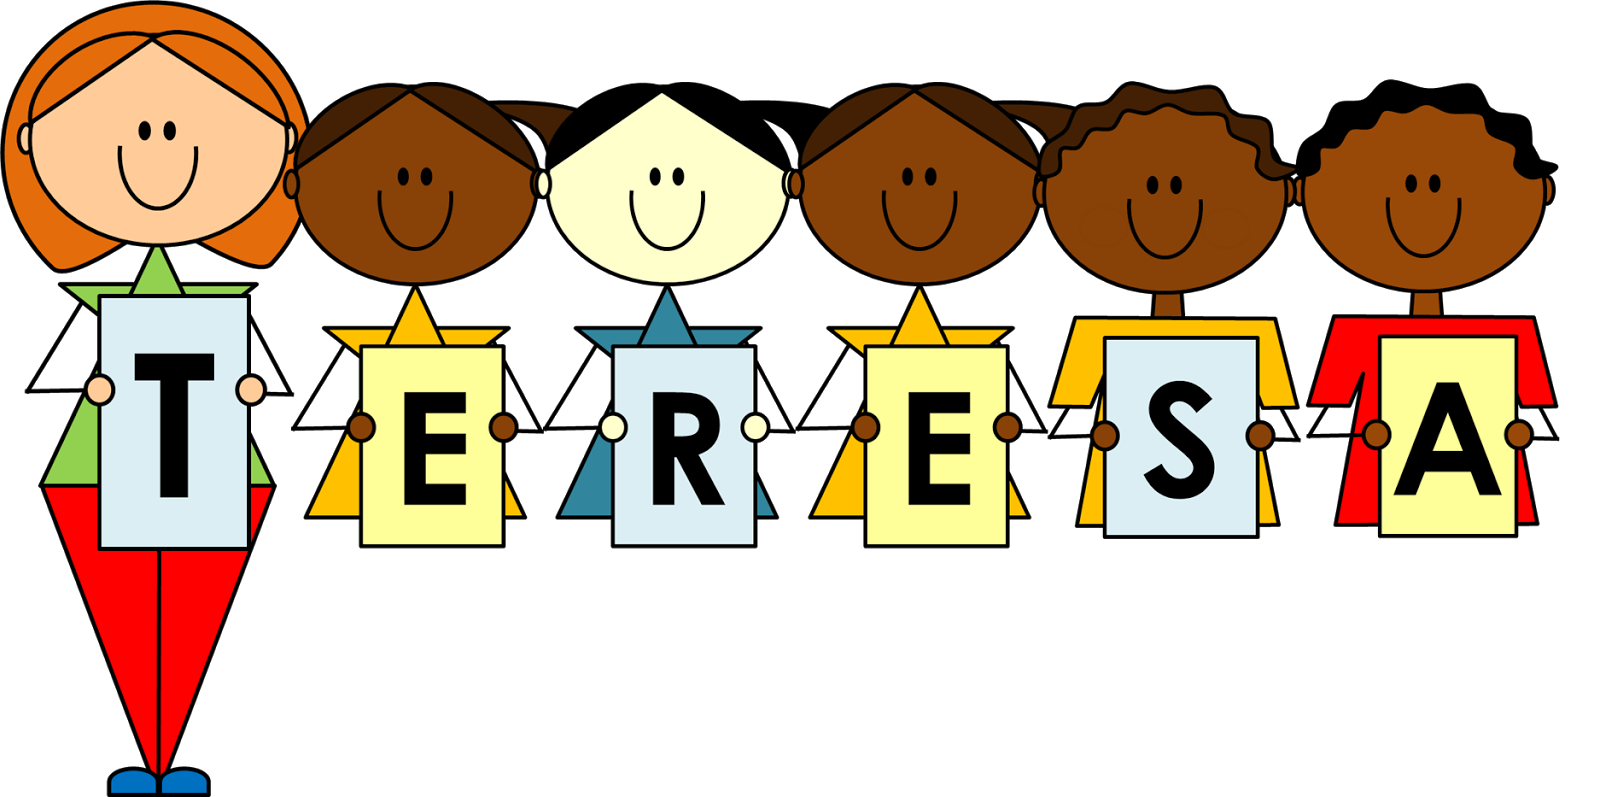 http://www.teacherspayteachers.com/Product/Alphabet-Kids-Clip-Art-Set-104-images-for-personal-and-commercial-use-1428364